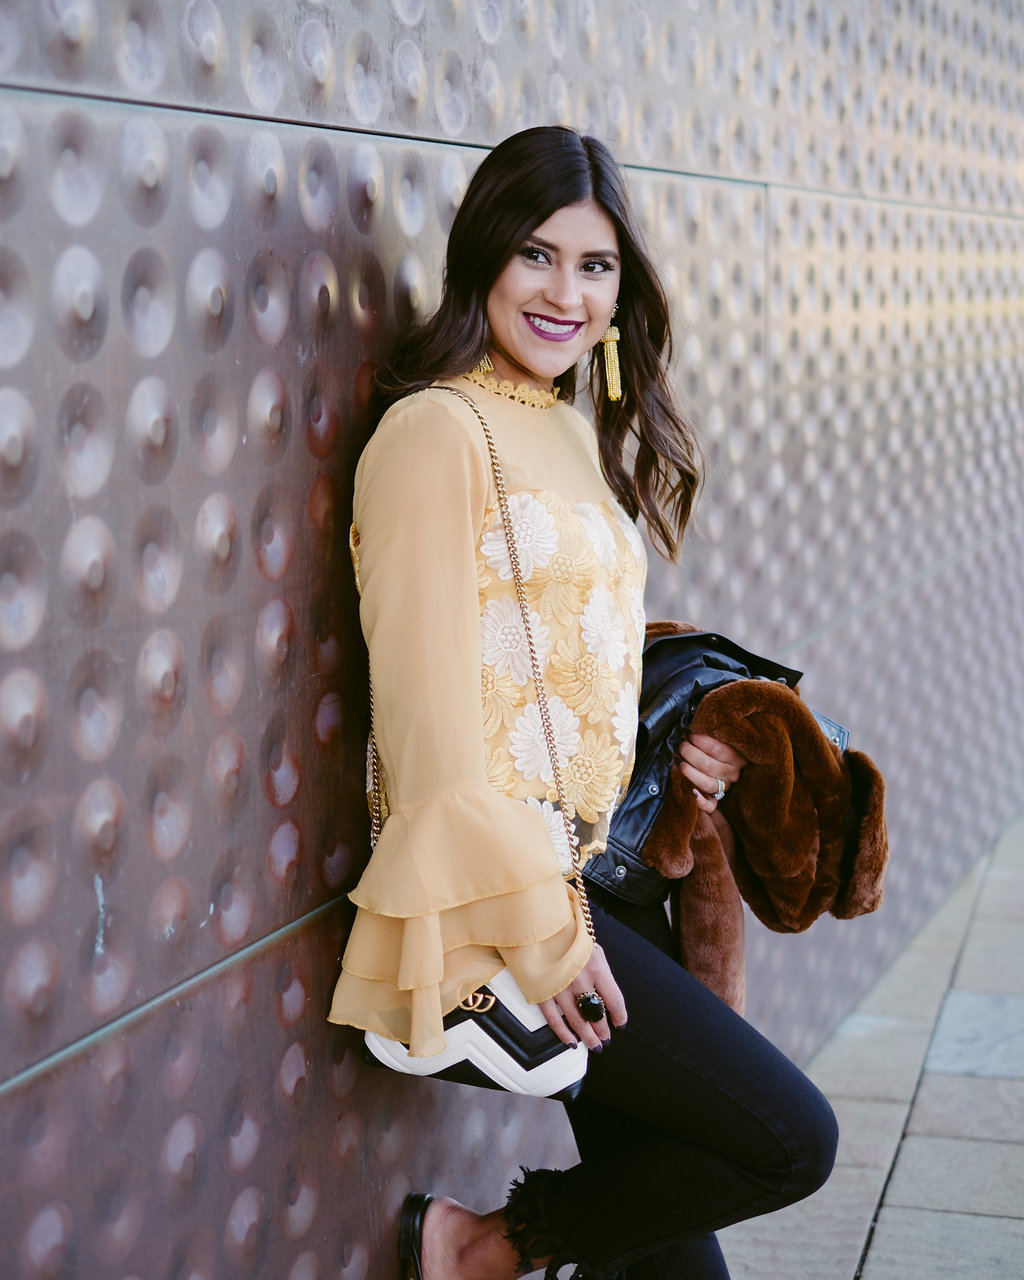 Life style blogger Kelsey Kaplan off Kelsey Kaplan Fashion wearing chevron Gucci purse and gold tassel earrings